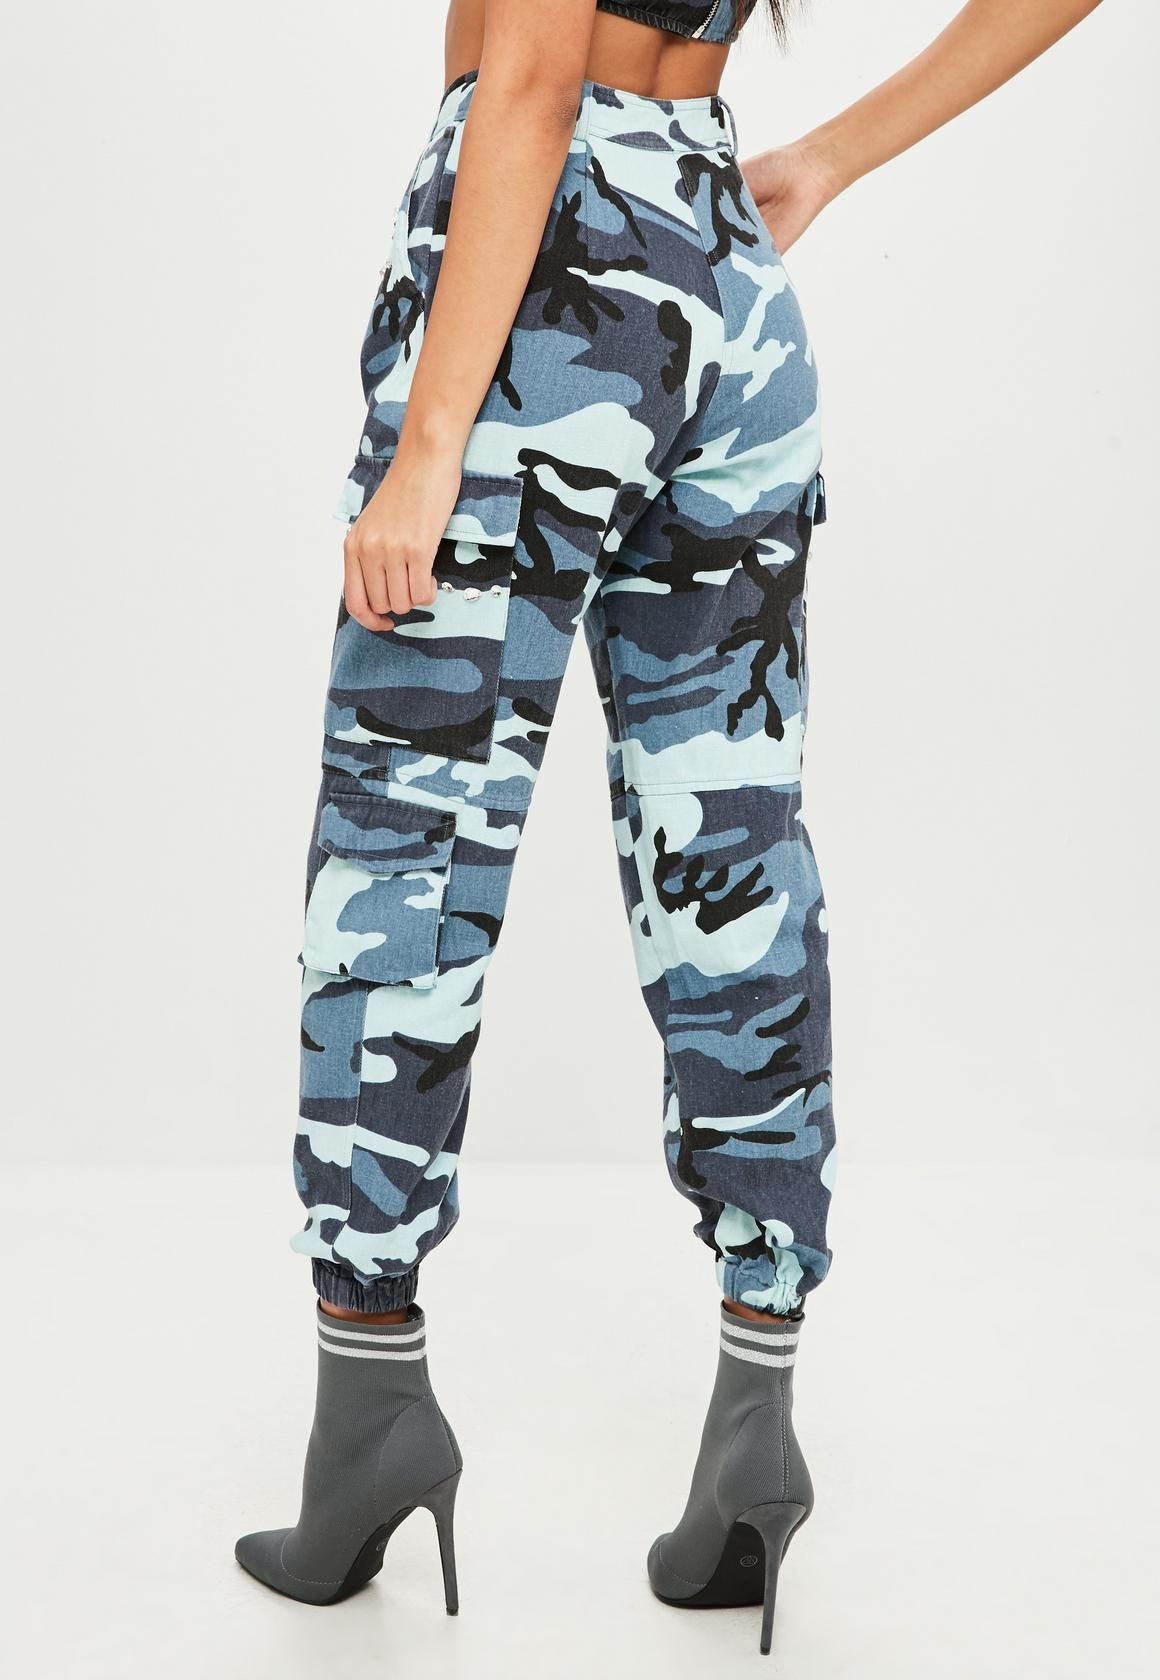 10ef6e8e724486 Missguided - Carli Bybel x Missguided Blue Camo Cargo Trousers ...